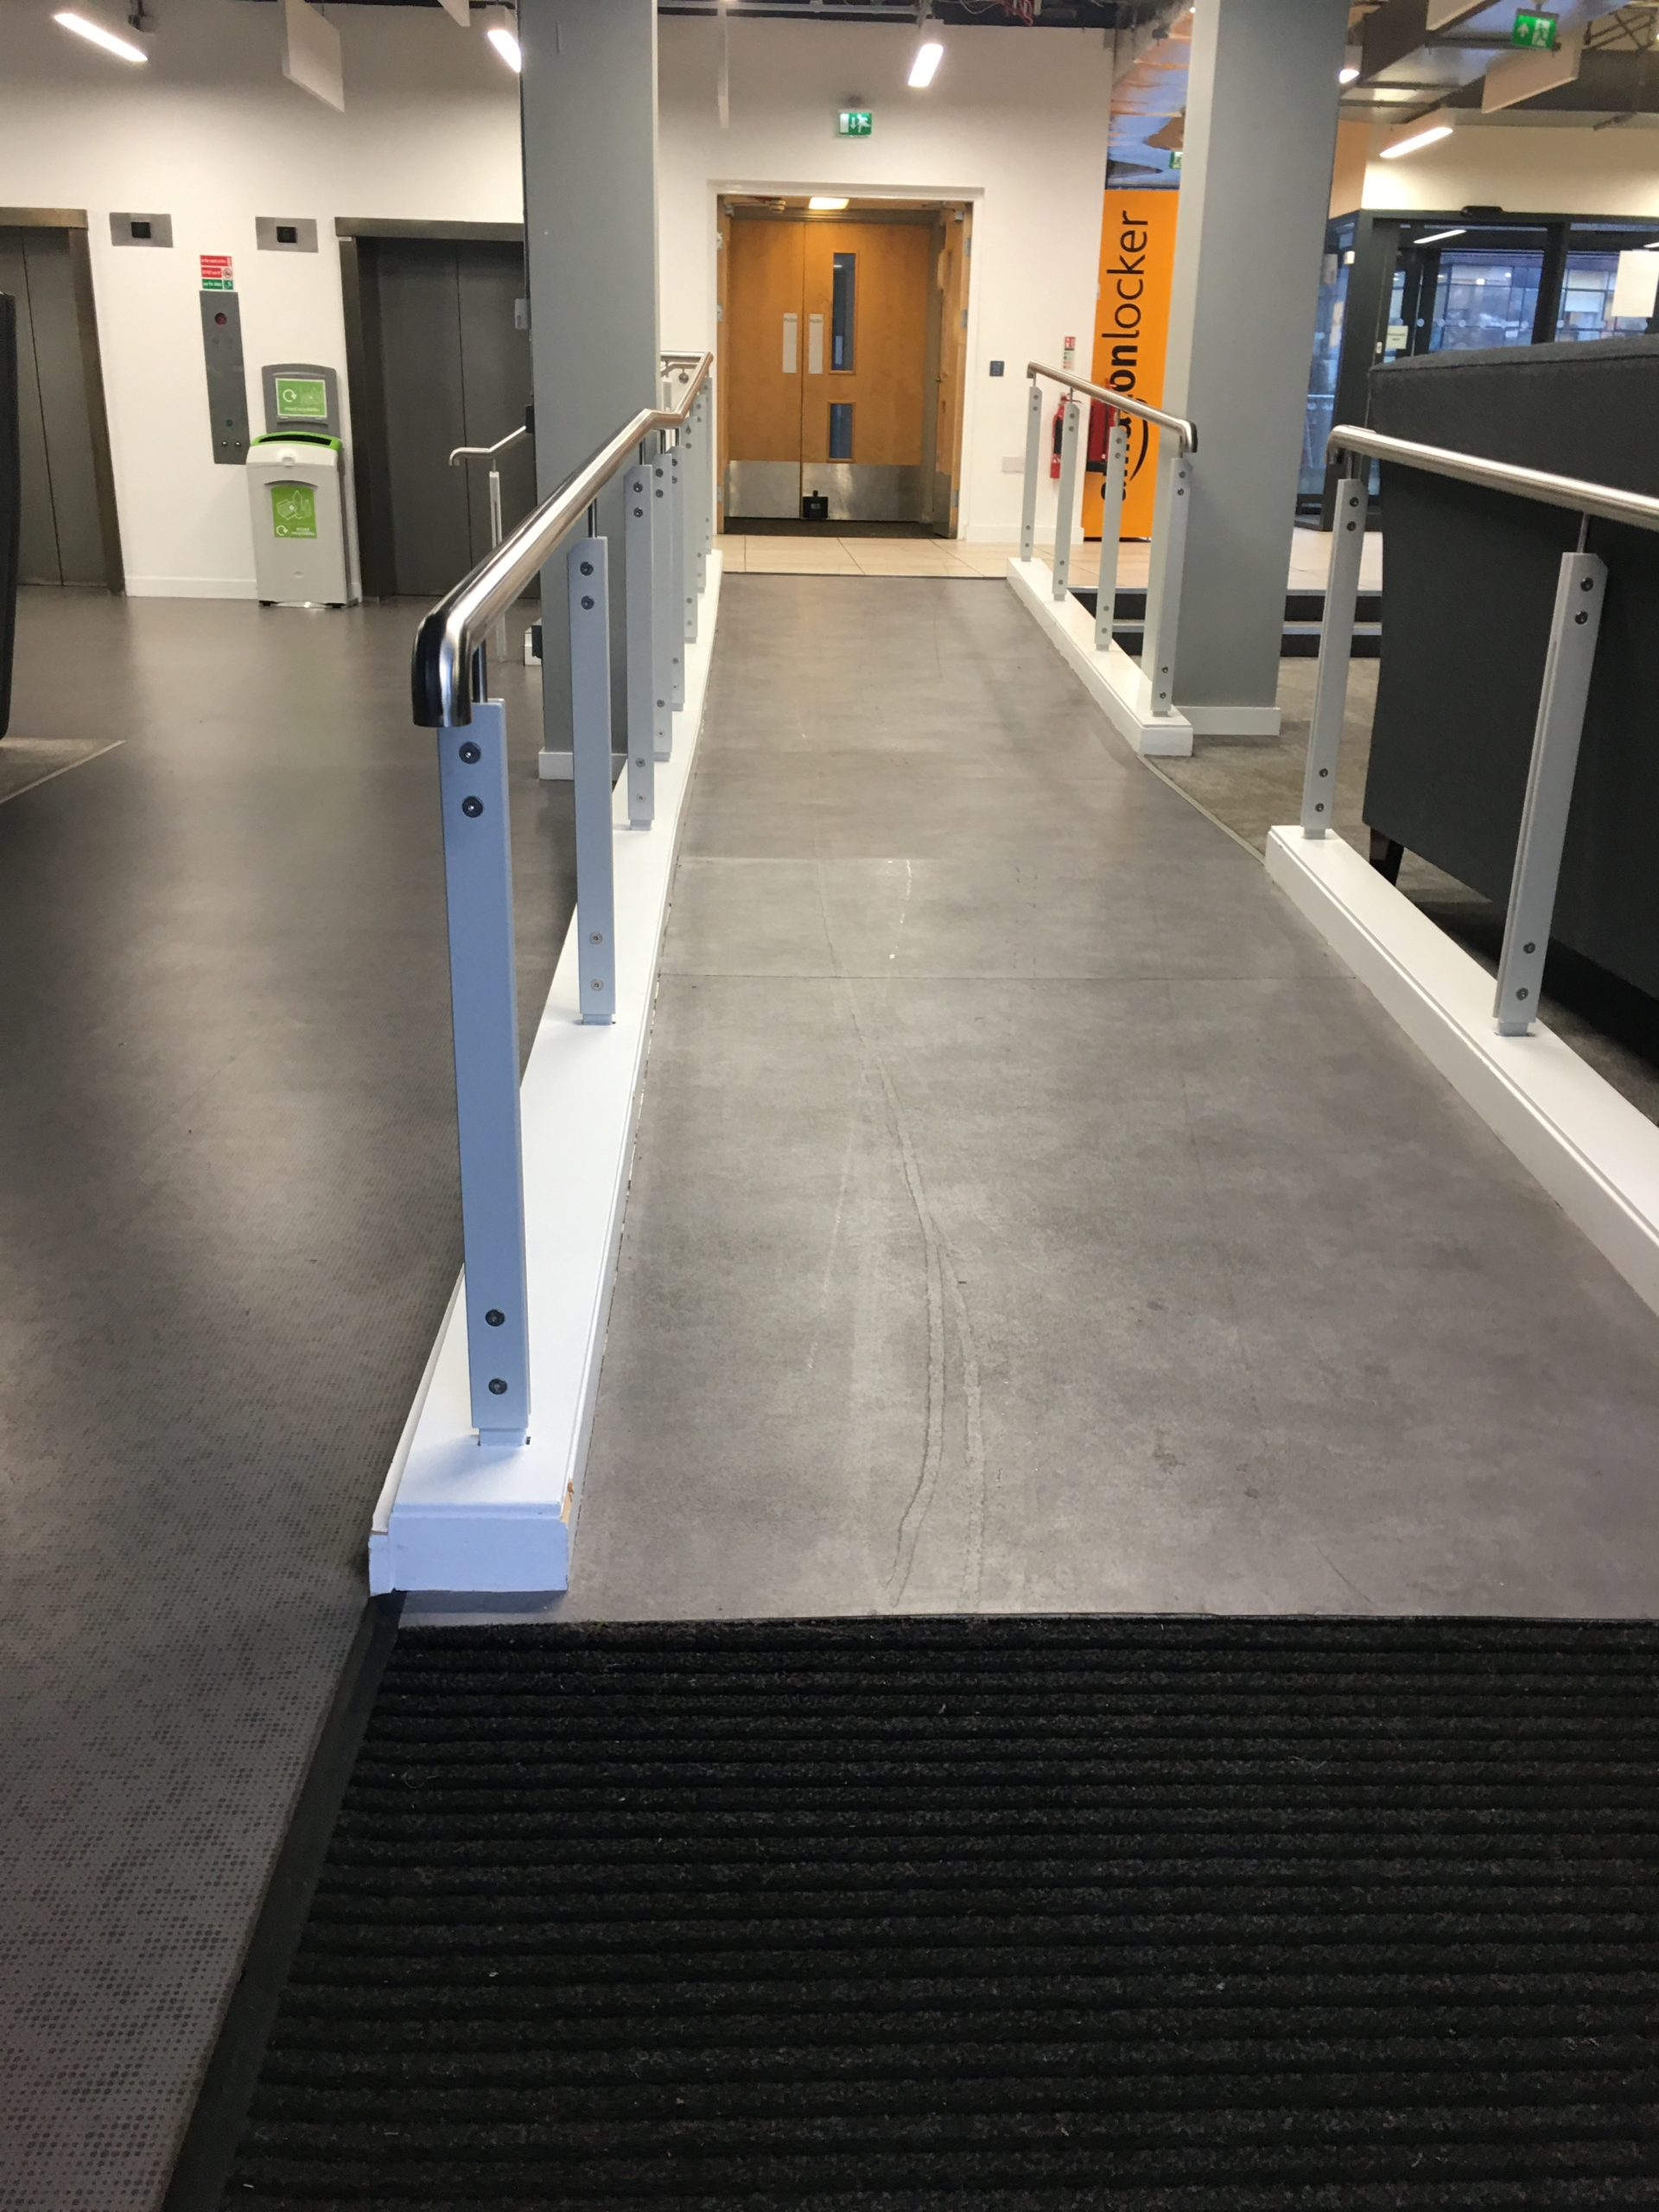 Staggered ramp